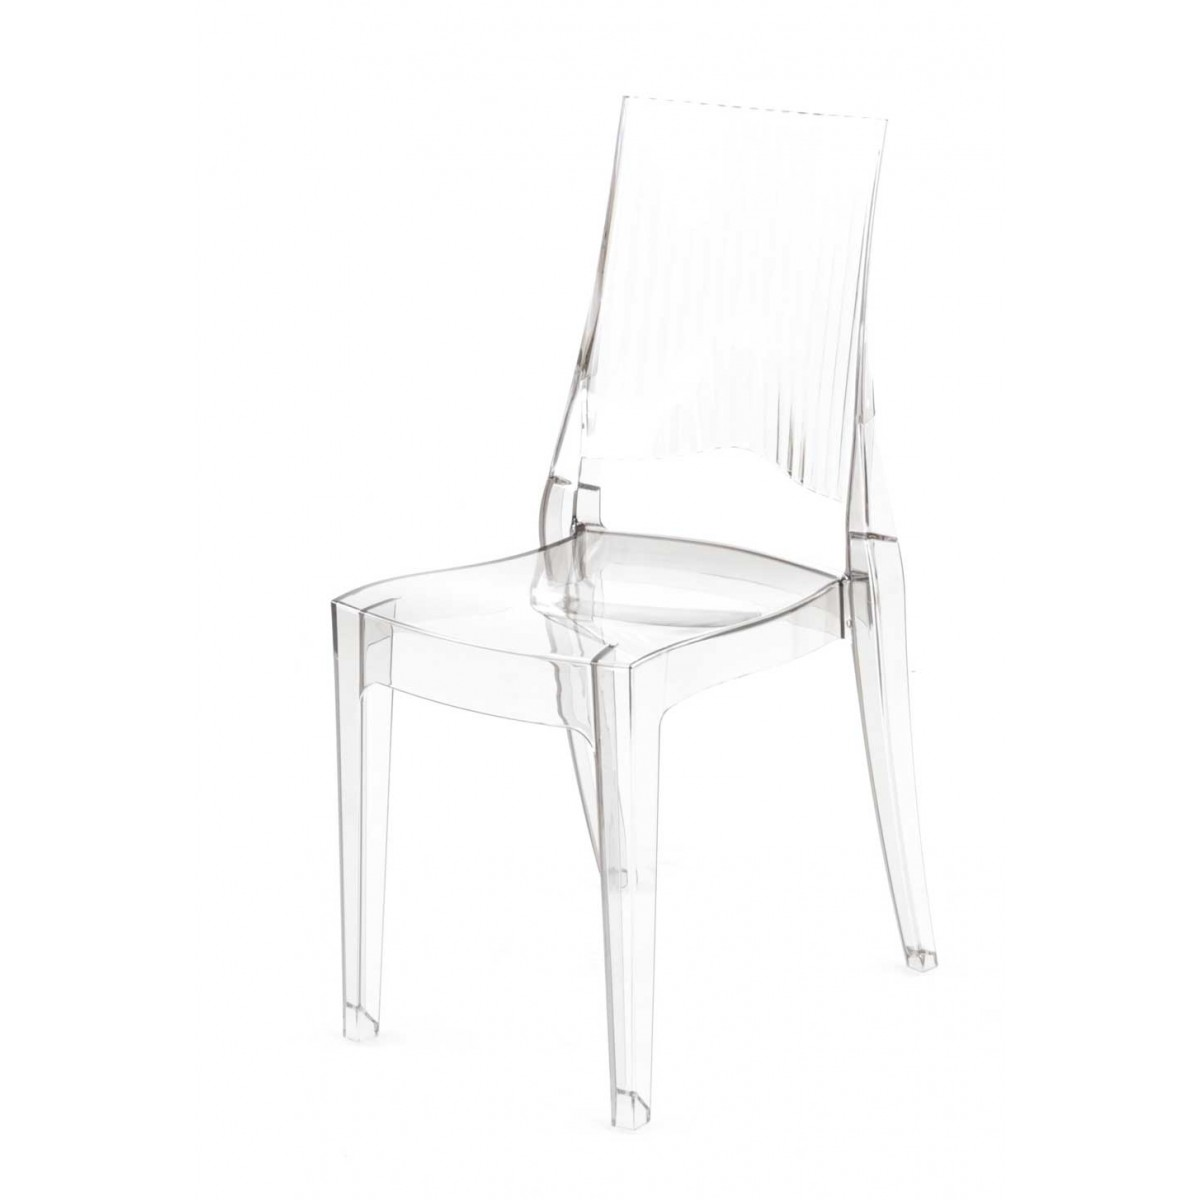 Fly Creteil Soldes Chaises Design Interesting Affordable Chaises